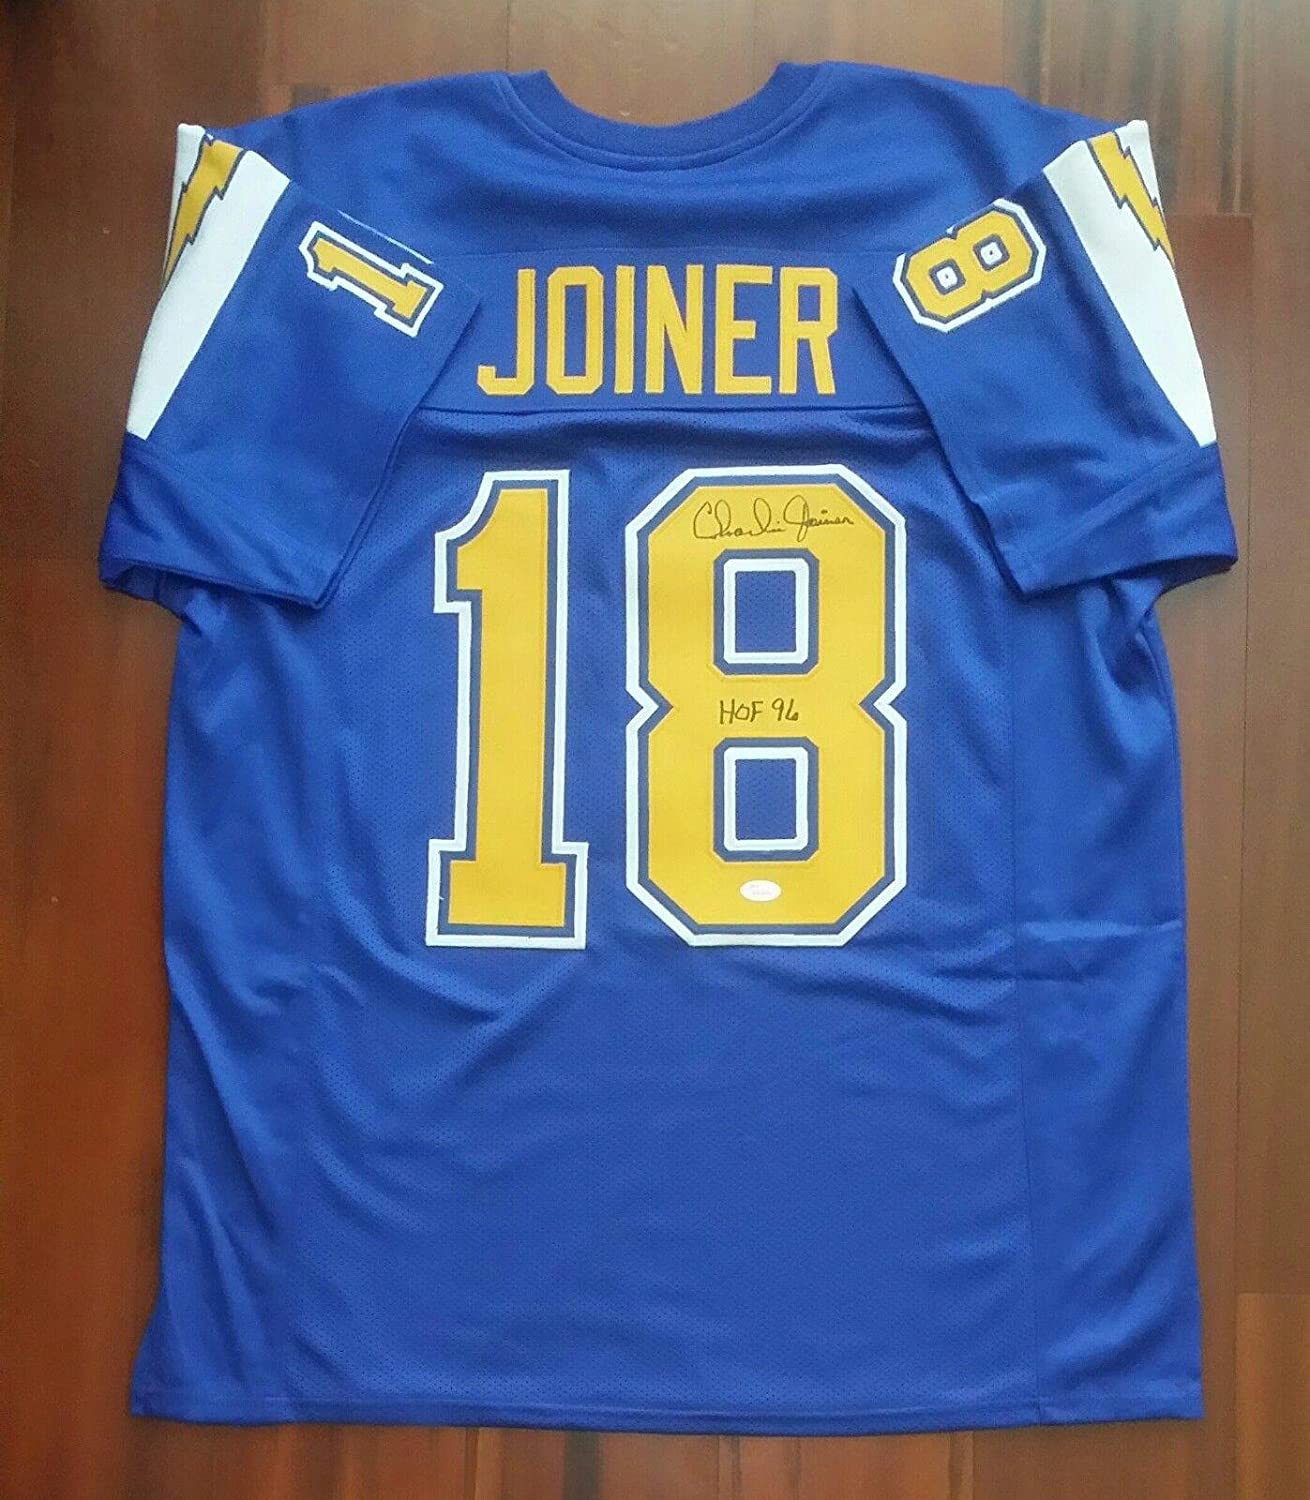 bbc2ac12670 Amazon.com  Charlie Joiner Signed Jersey - JSA Certified - Autographed NFL  Jerseys  Sports Collectibles